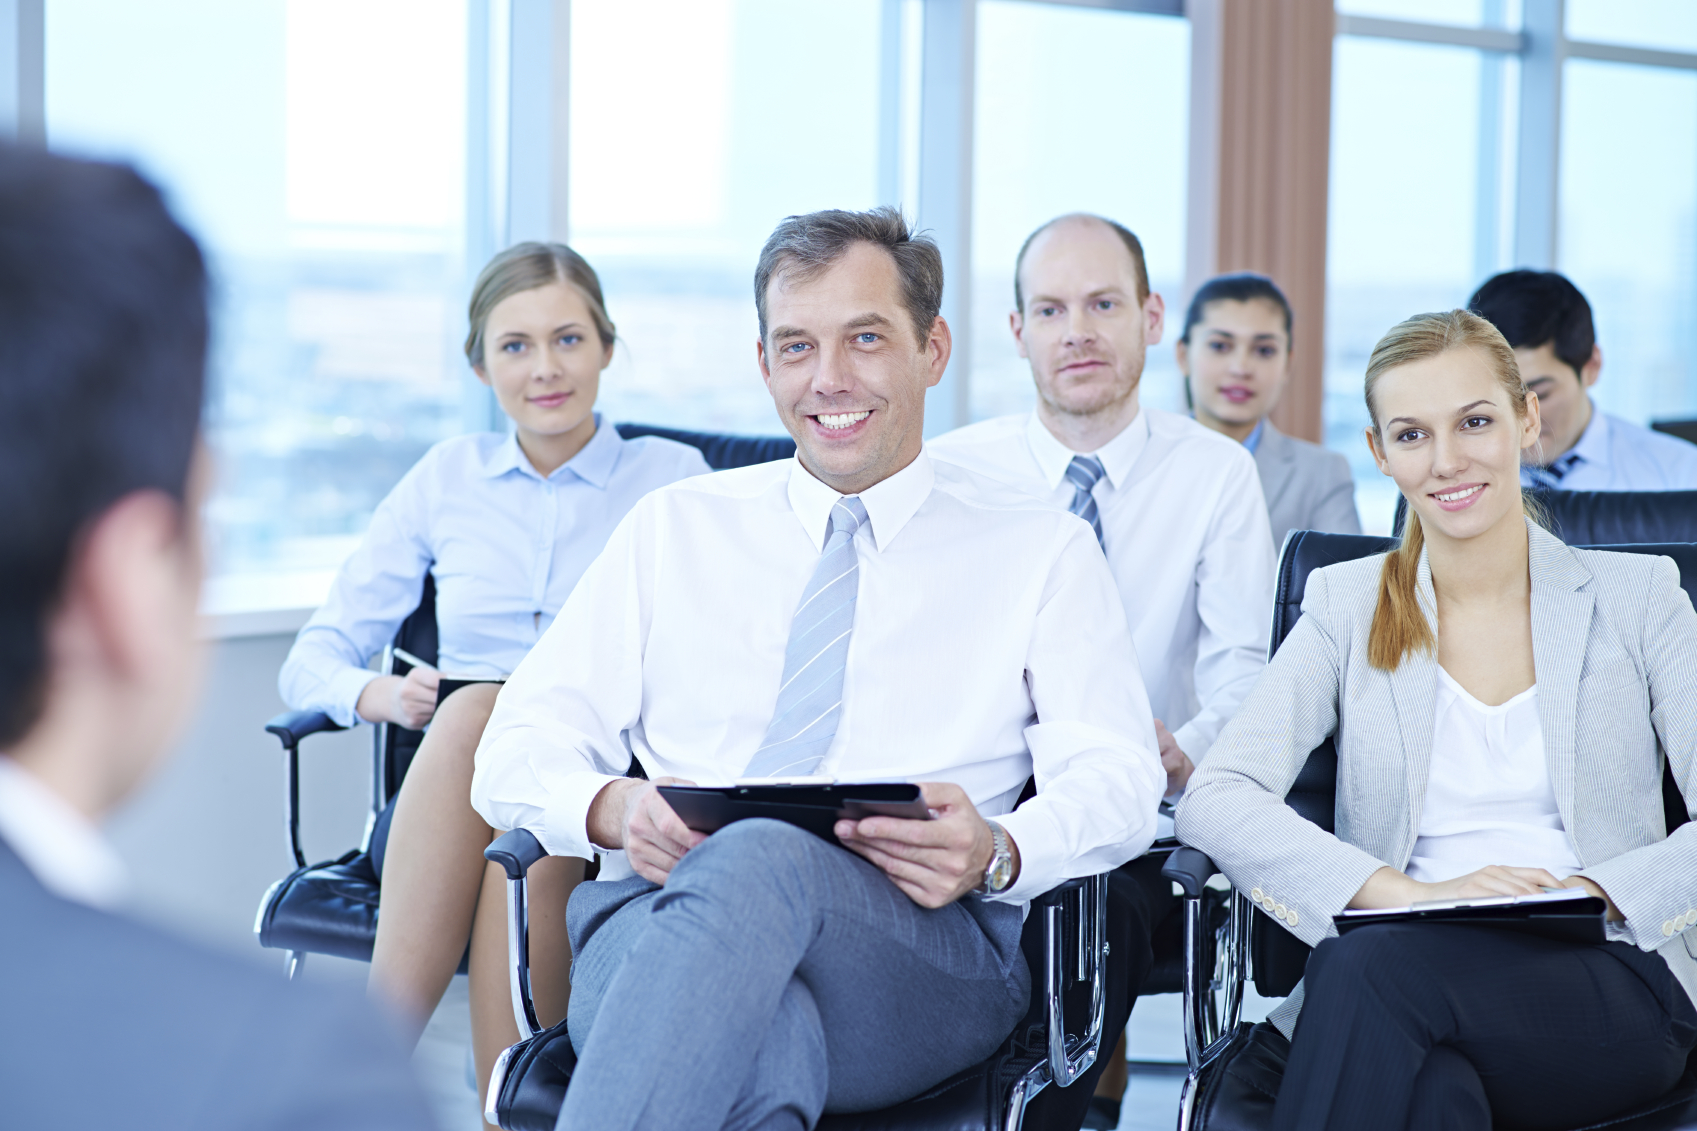 the growing need for hr professionals Commercially-skilled hr professionals are in demand, but many fail to  the  role of an hr professional has evolved over time in line with the growing  demands.